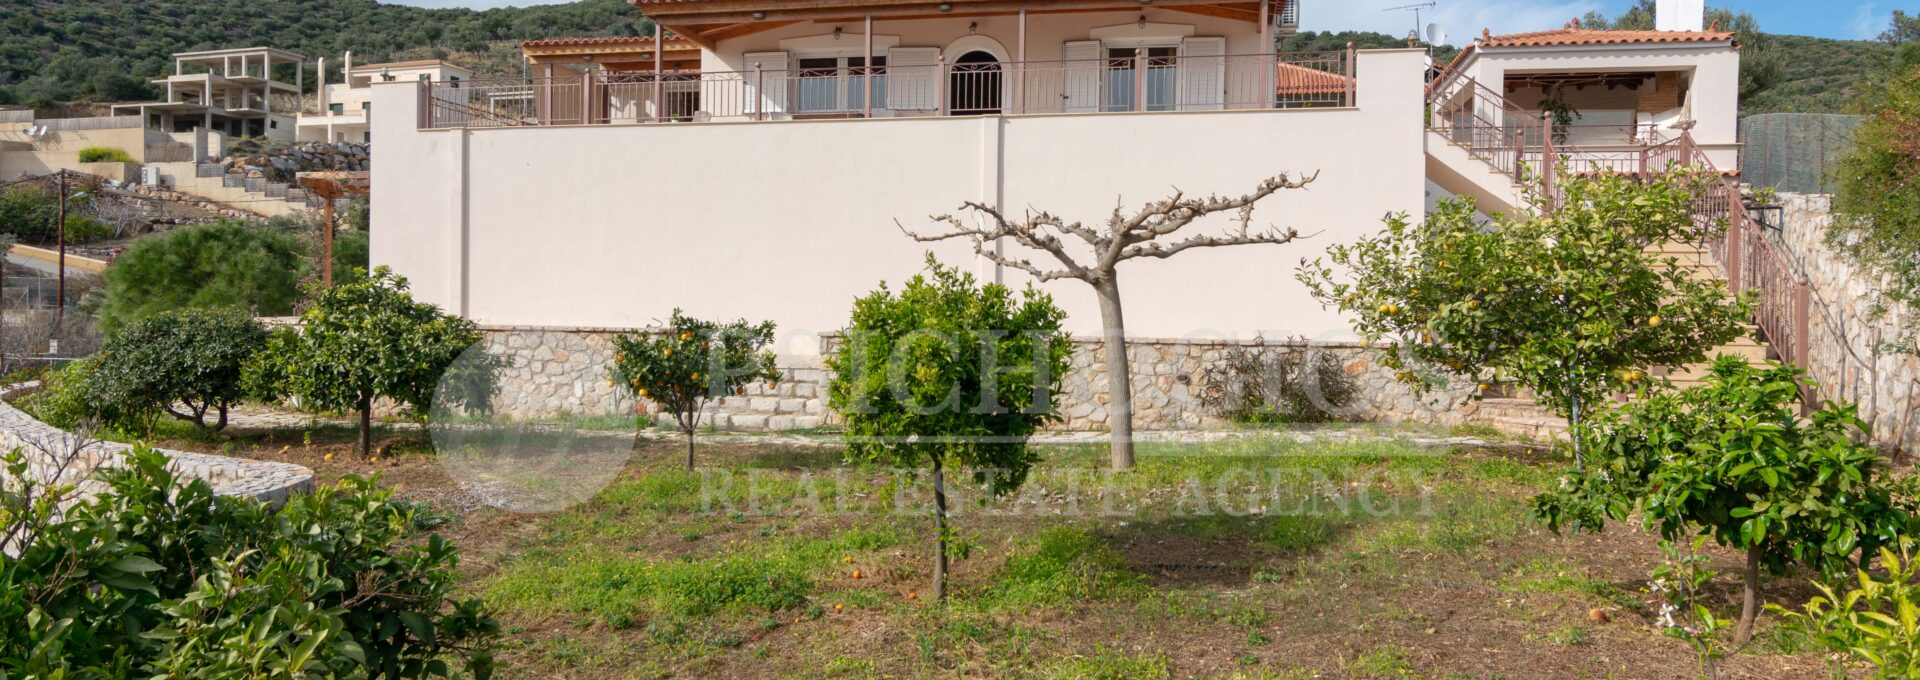 for_sale_house_107_square_meters_3_bedrooms_sea_view_ermioni_greece 1 1 (37)